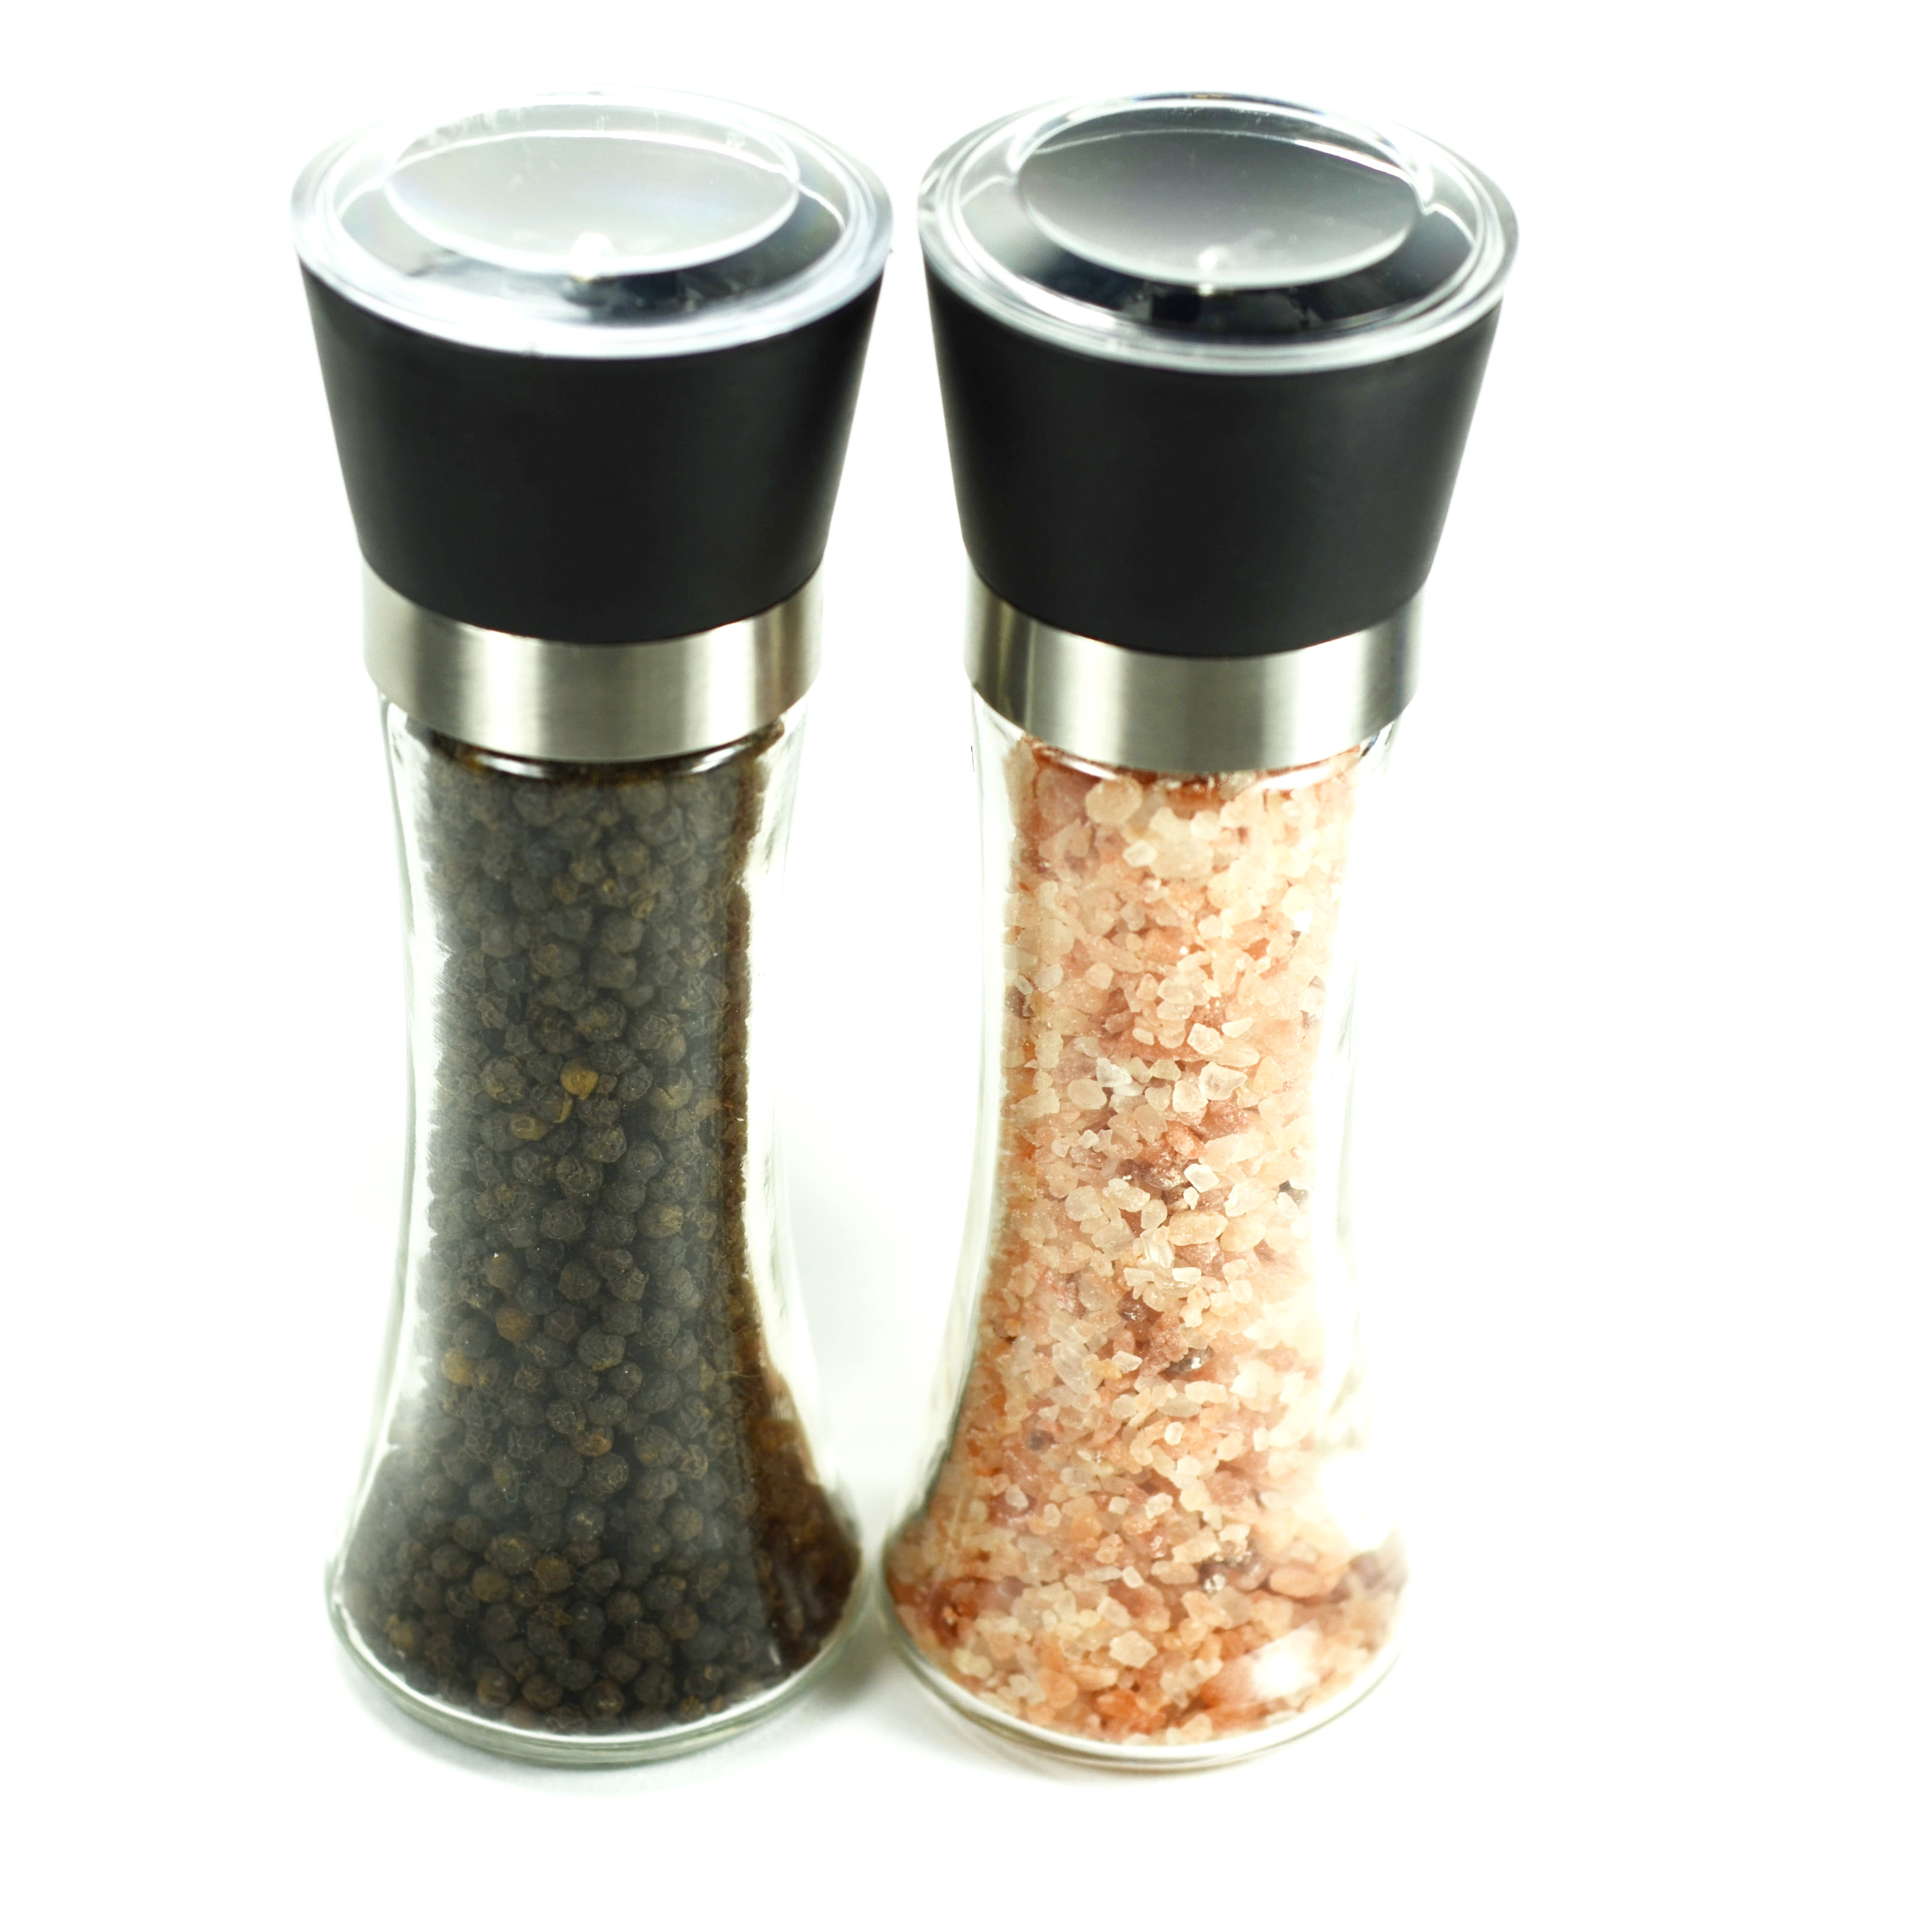 ORPA-04 salt and pepper grinder